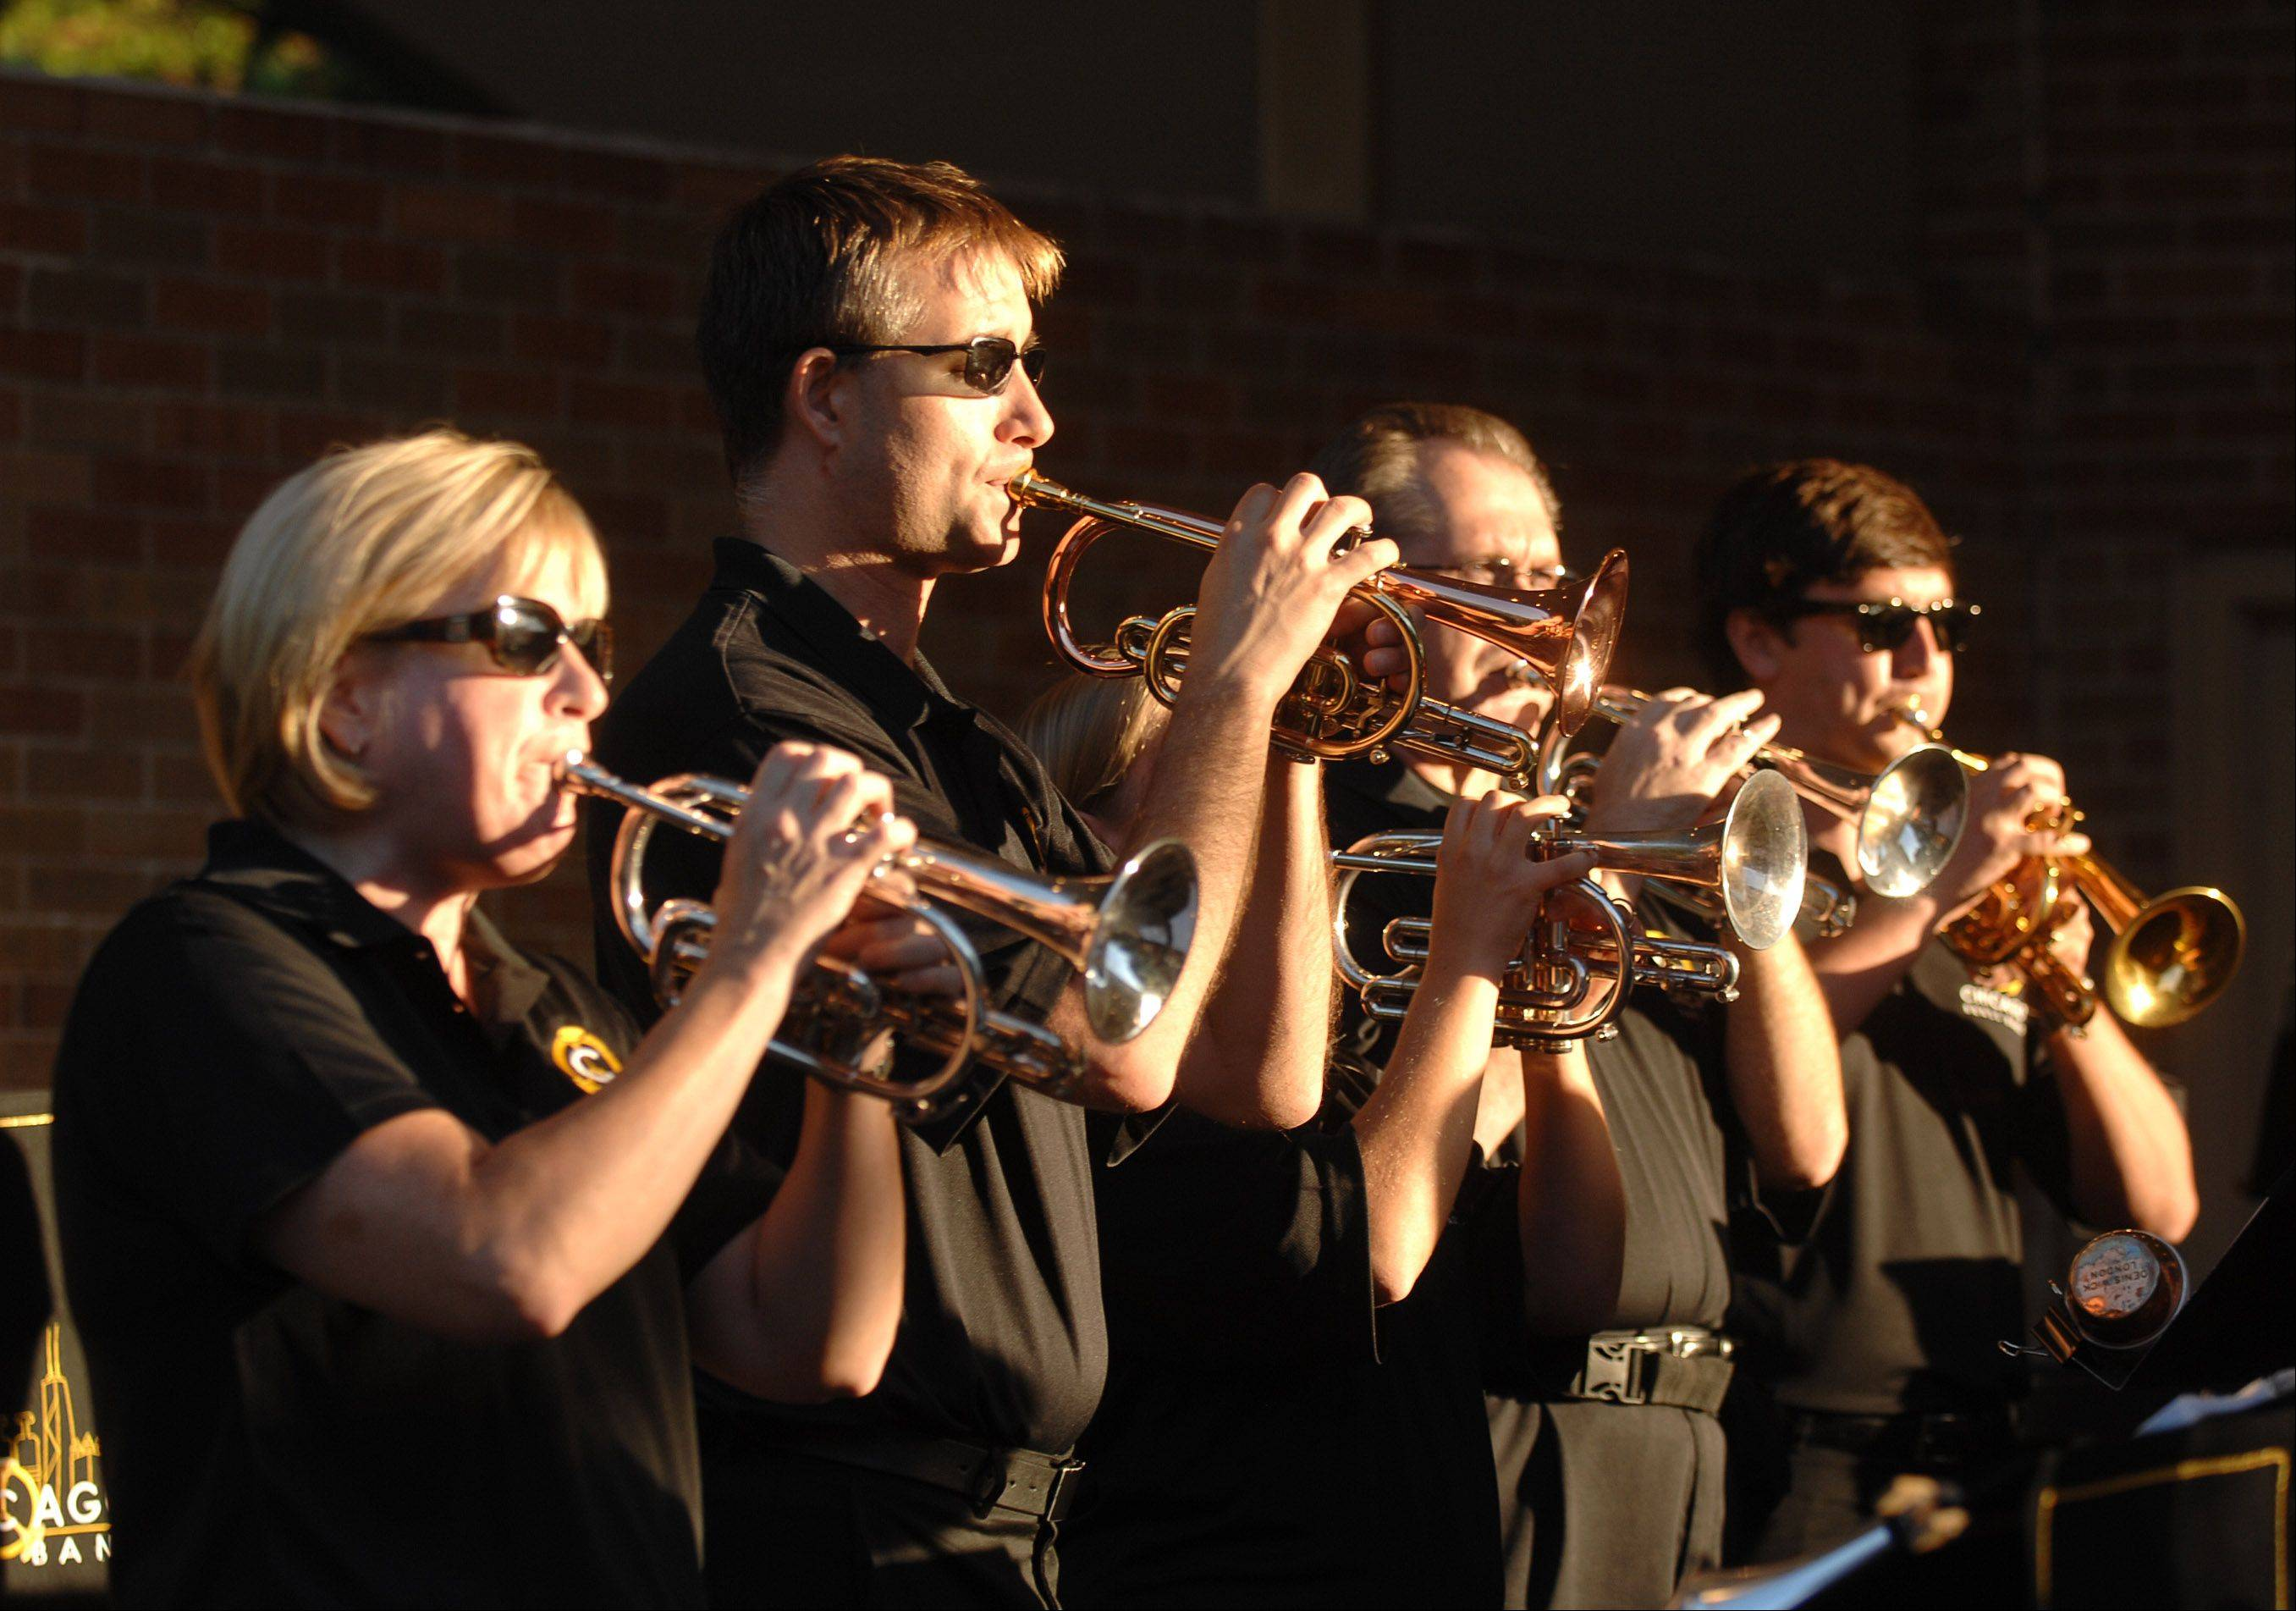 The Chicago Brass Band will kick off the 14th annual Wheaton Band Festival at Memorial Park Friday in Wheaton.